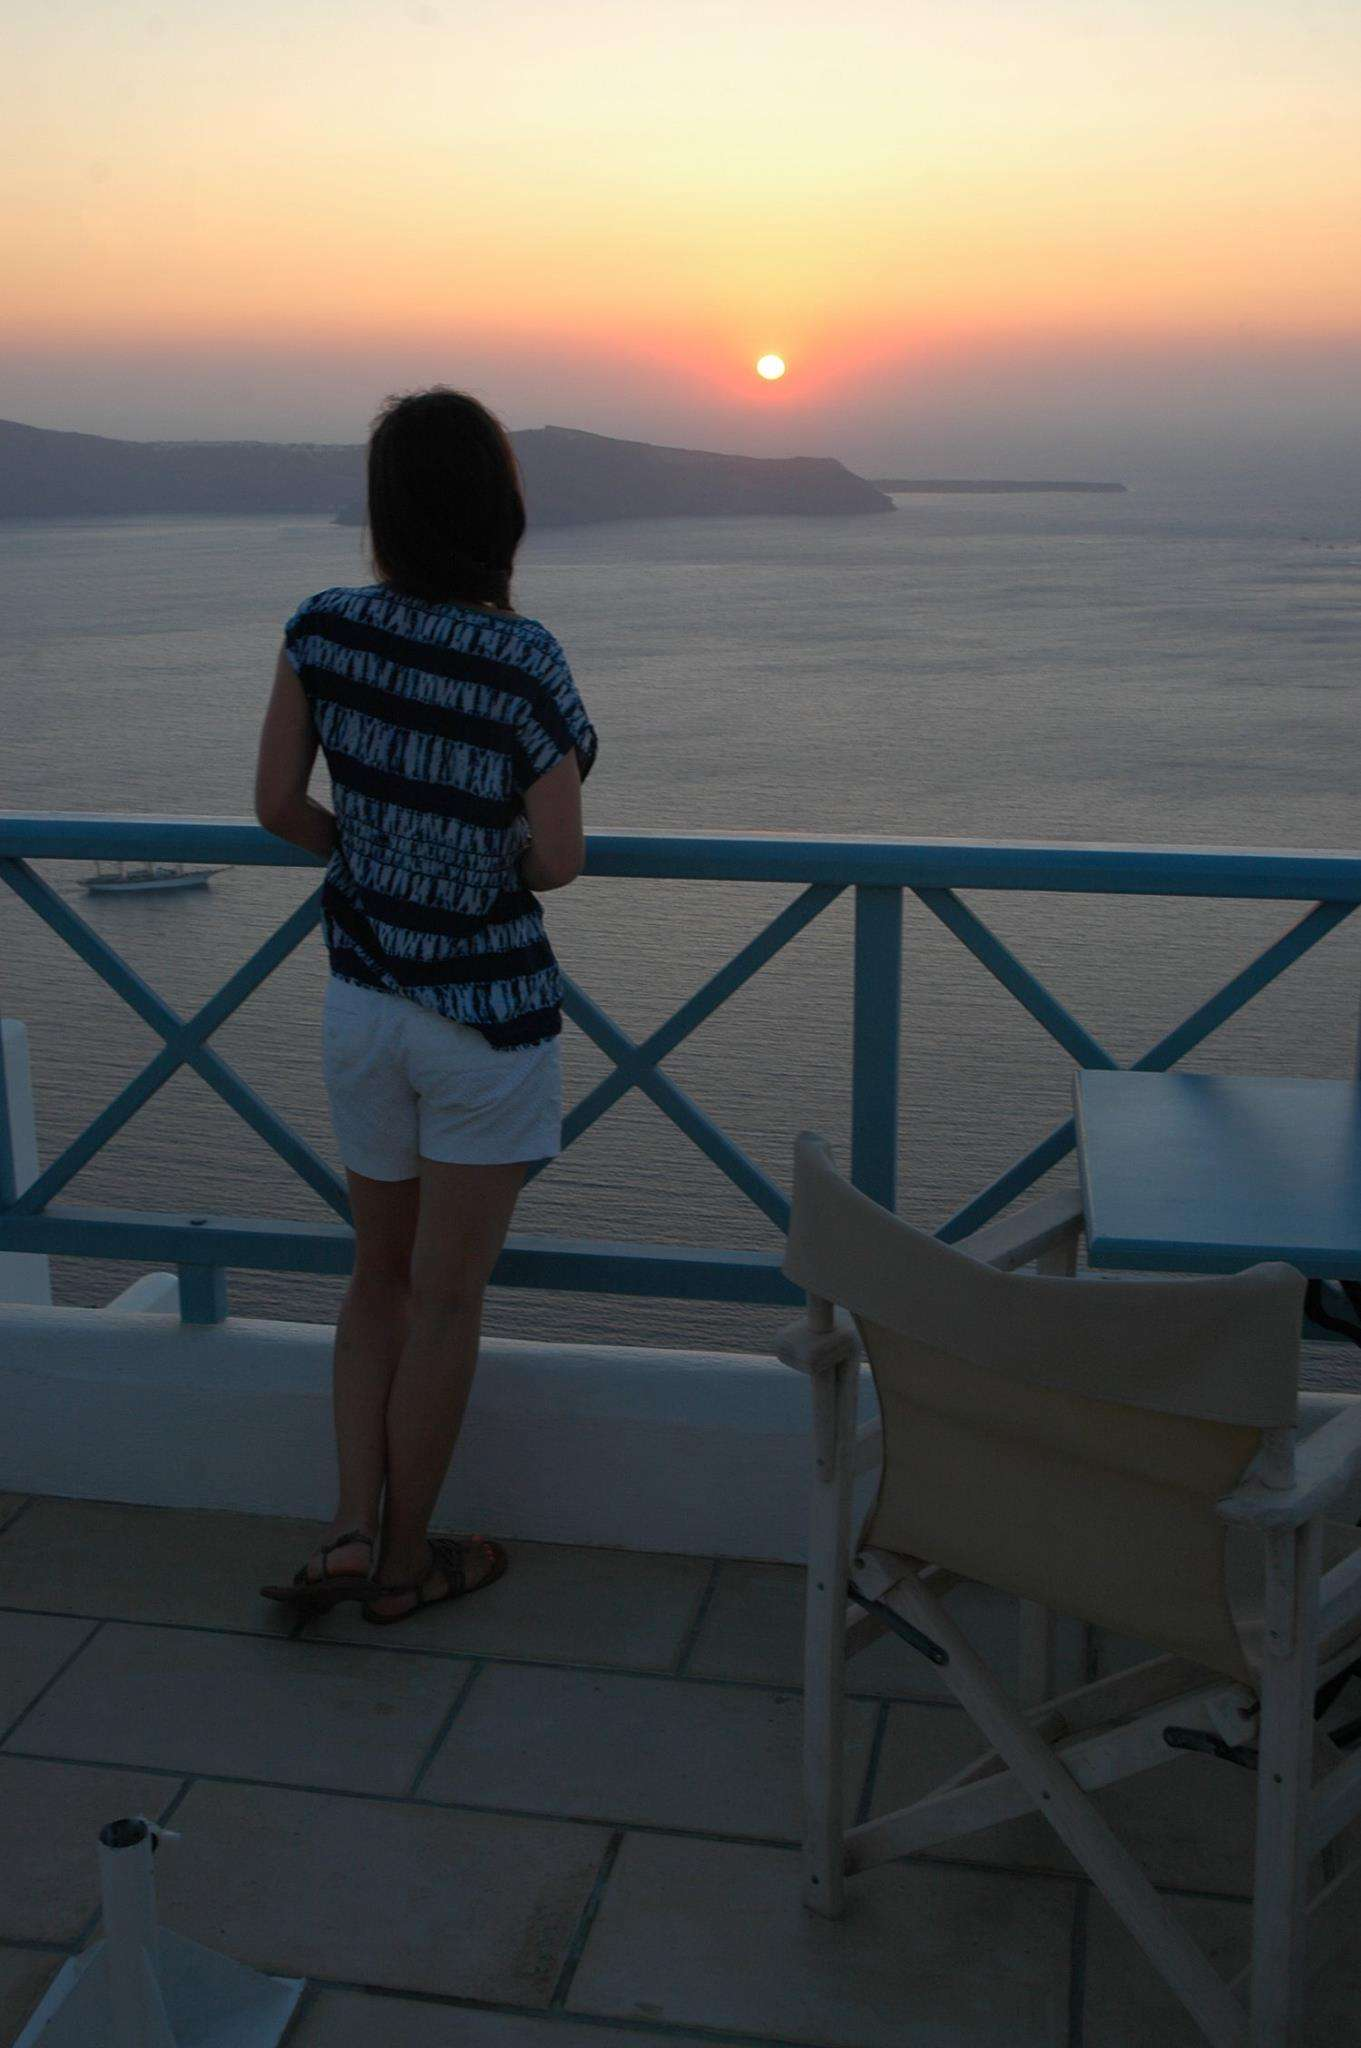 Watching the mesmerizing first sunset at Absolute Bliss Hotel in Santorini